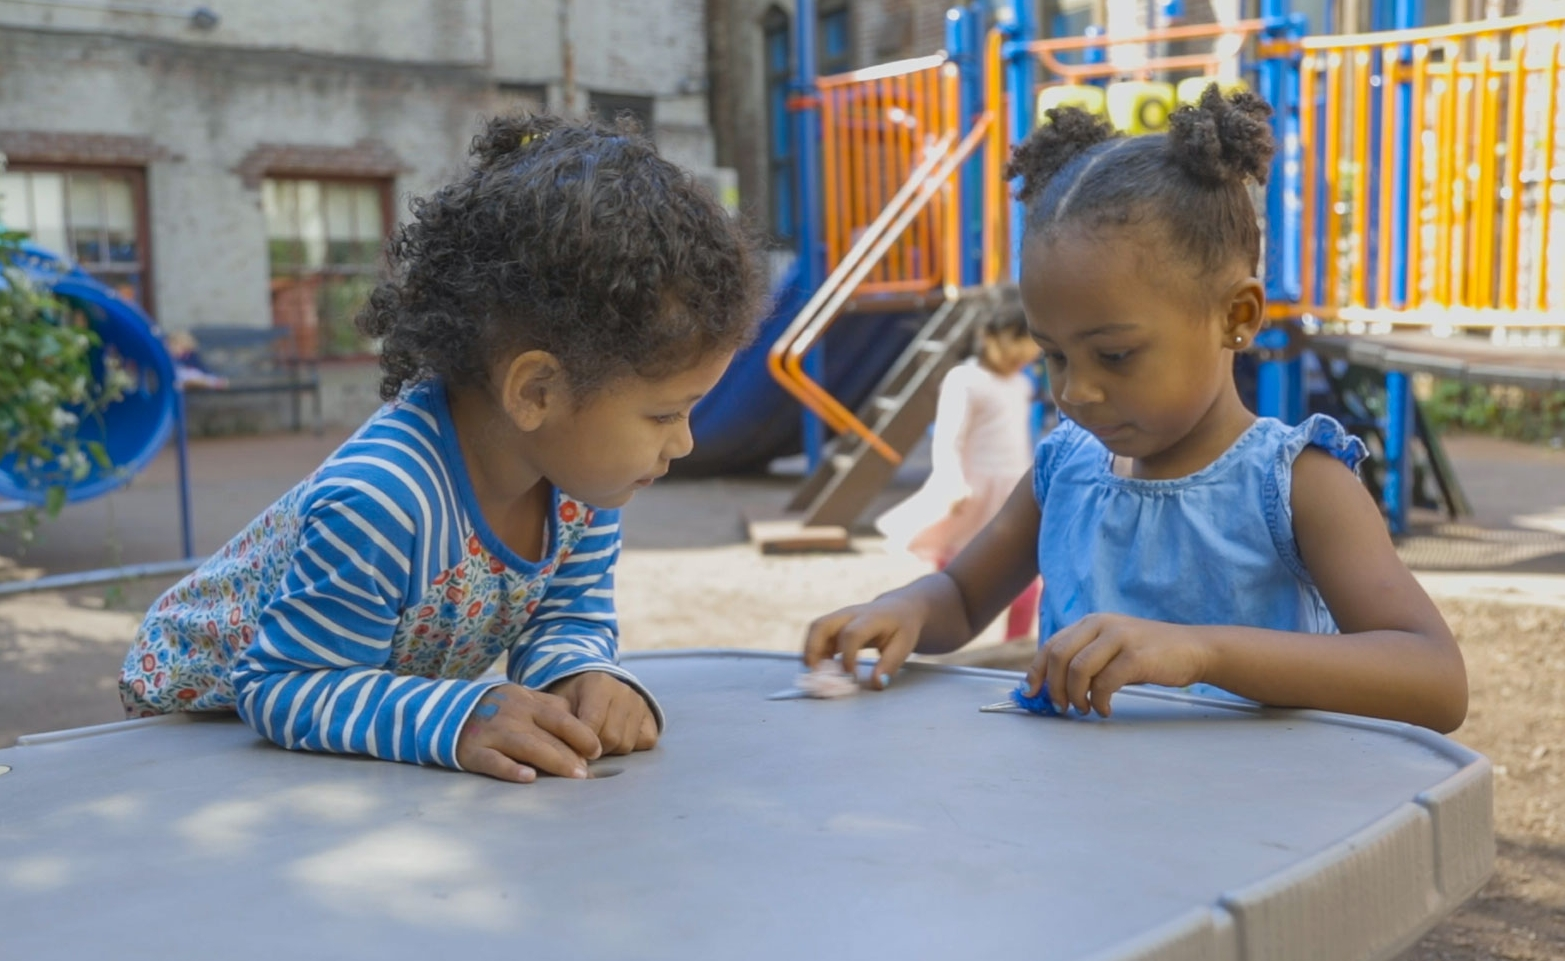 Our First Priority - is to build a warm, supportive classroom community in which each child is a valued member.